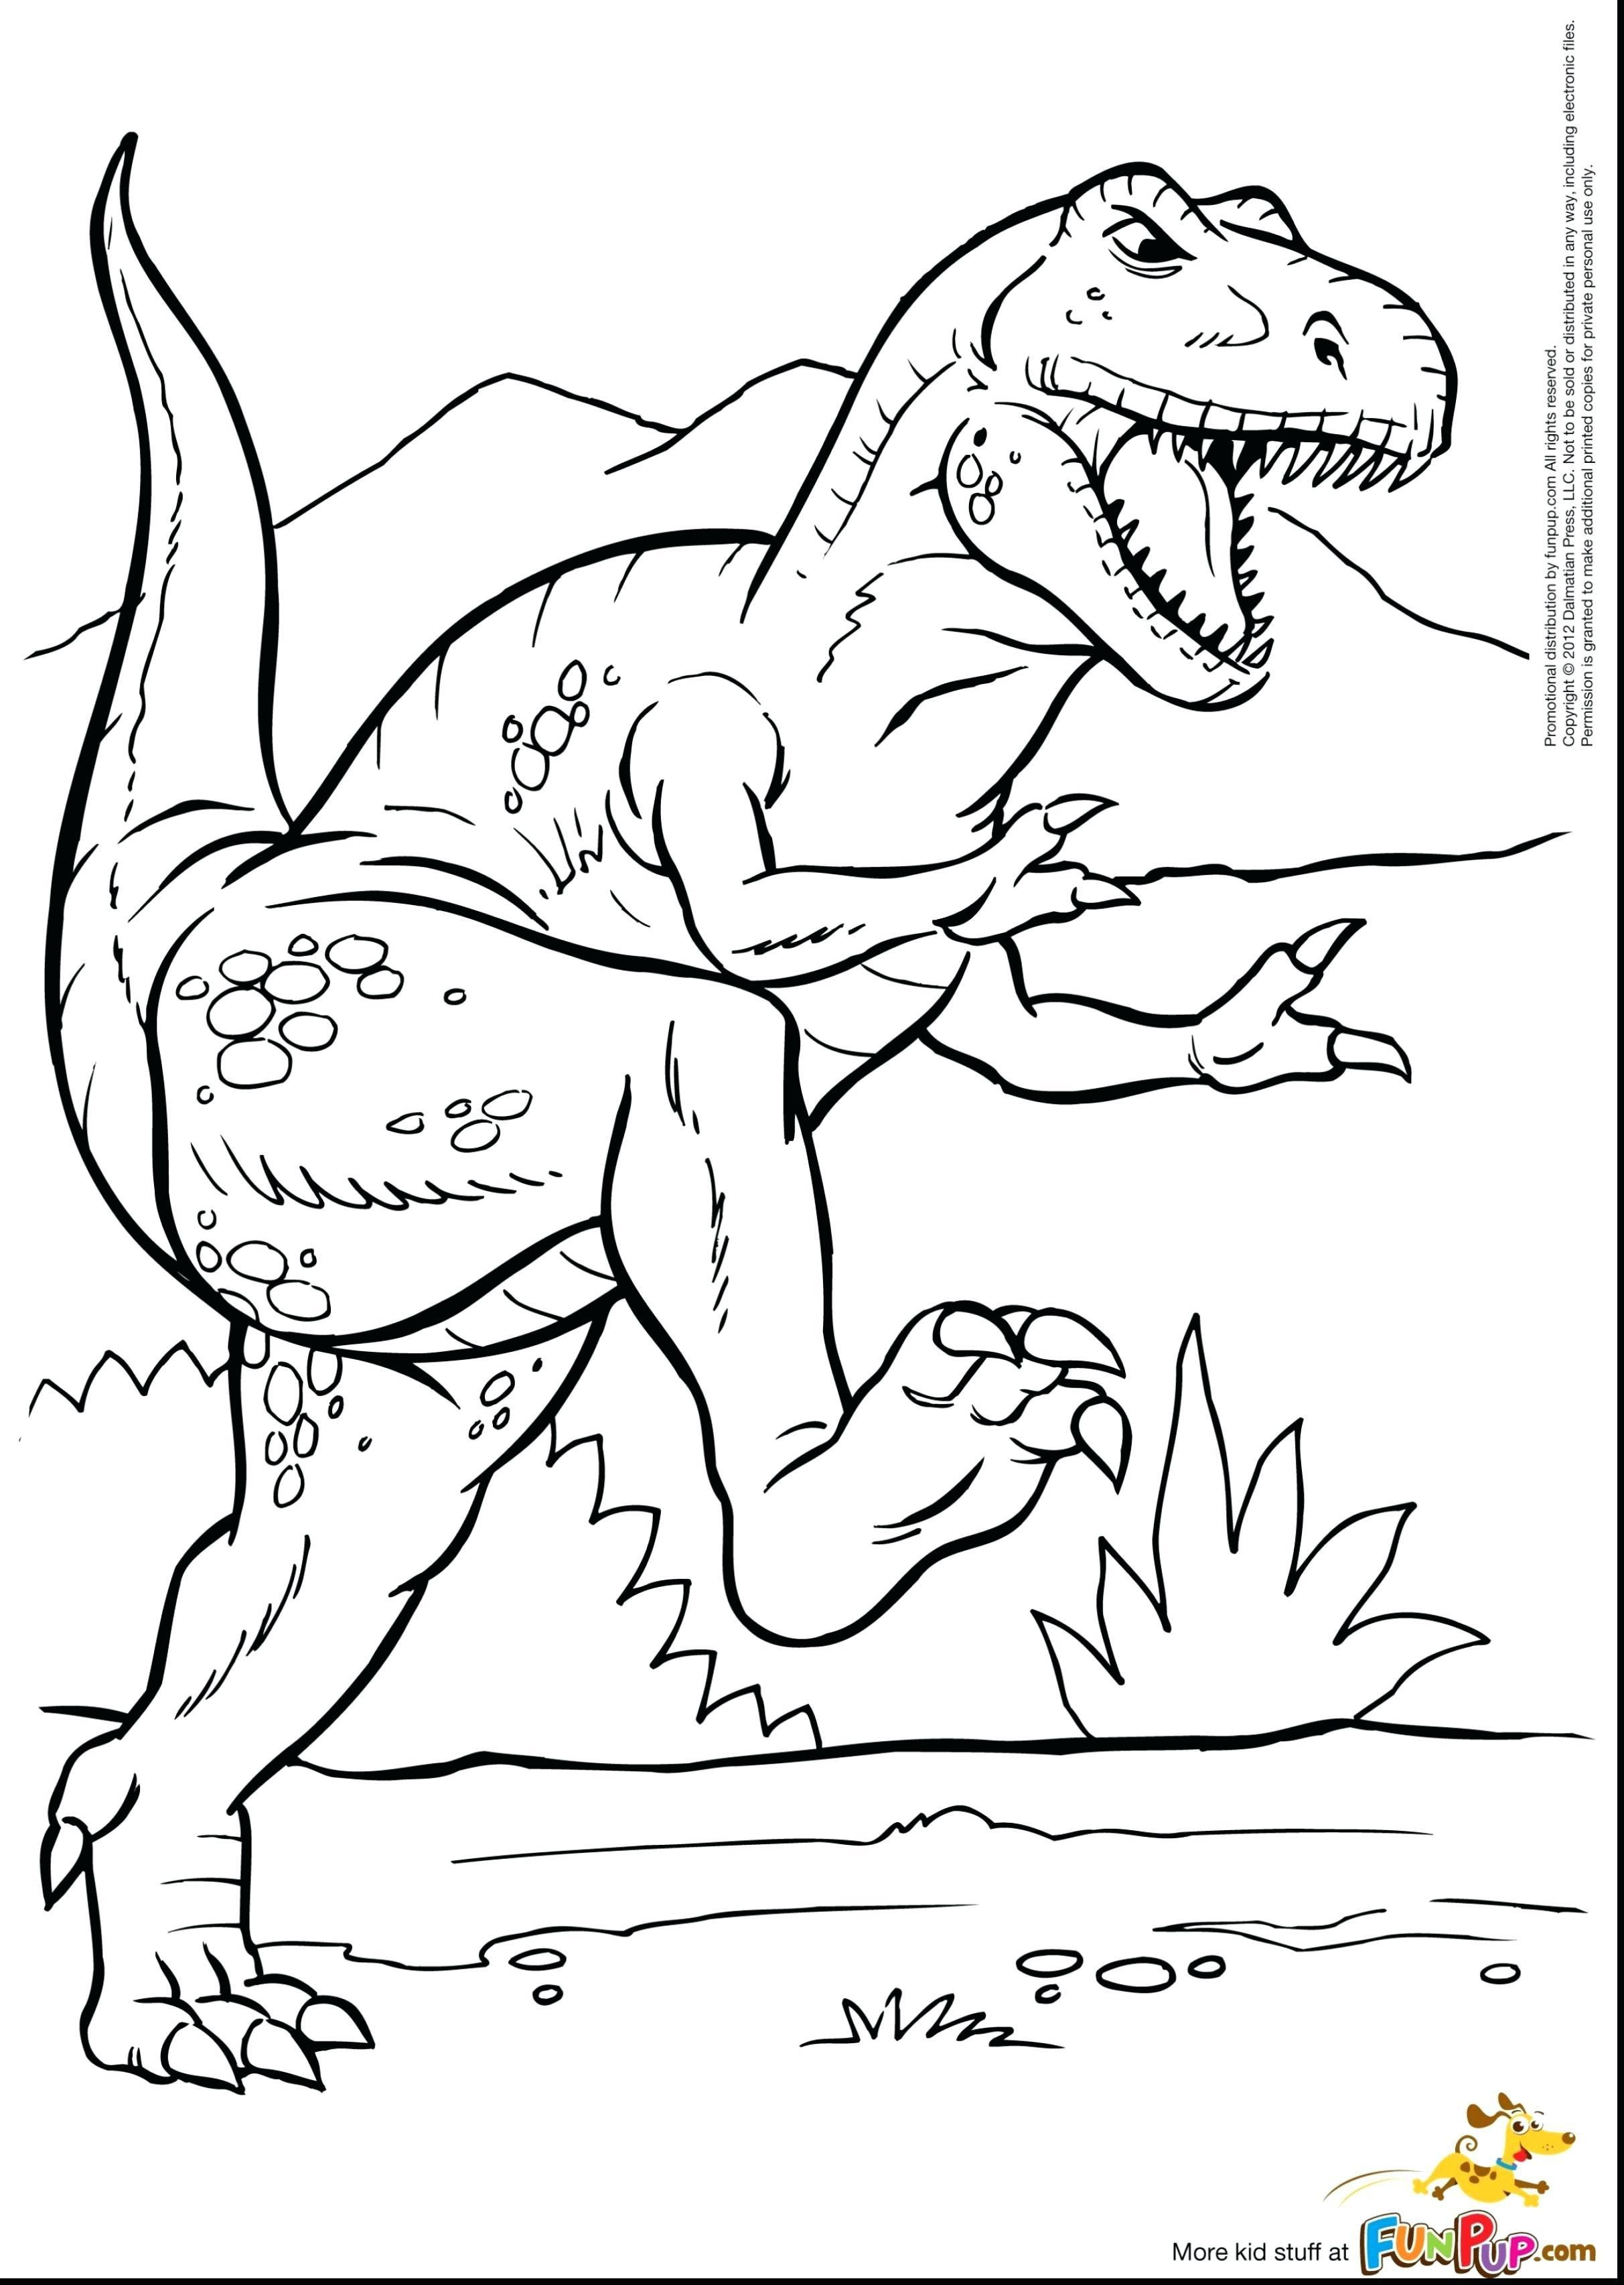 Lego T Dinosaurs Coloring Pages Dinosaurs Coloring Pages